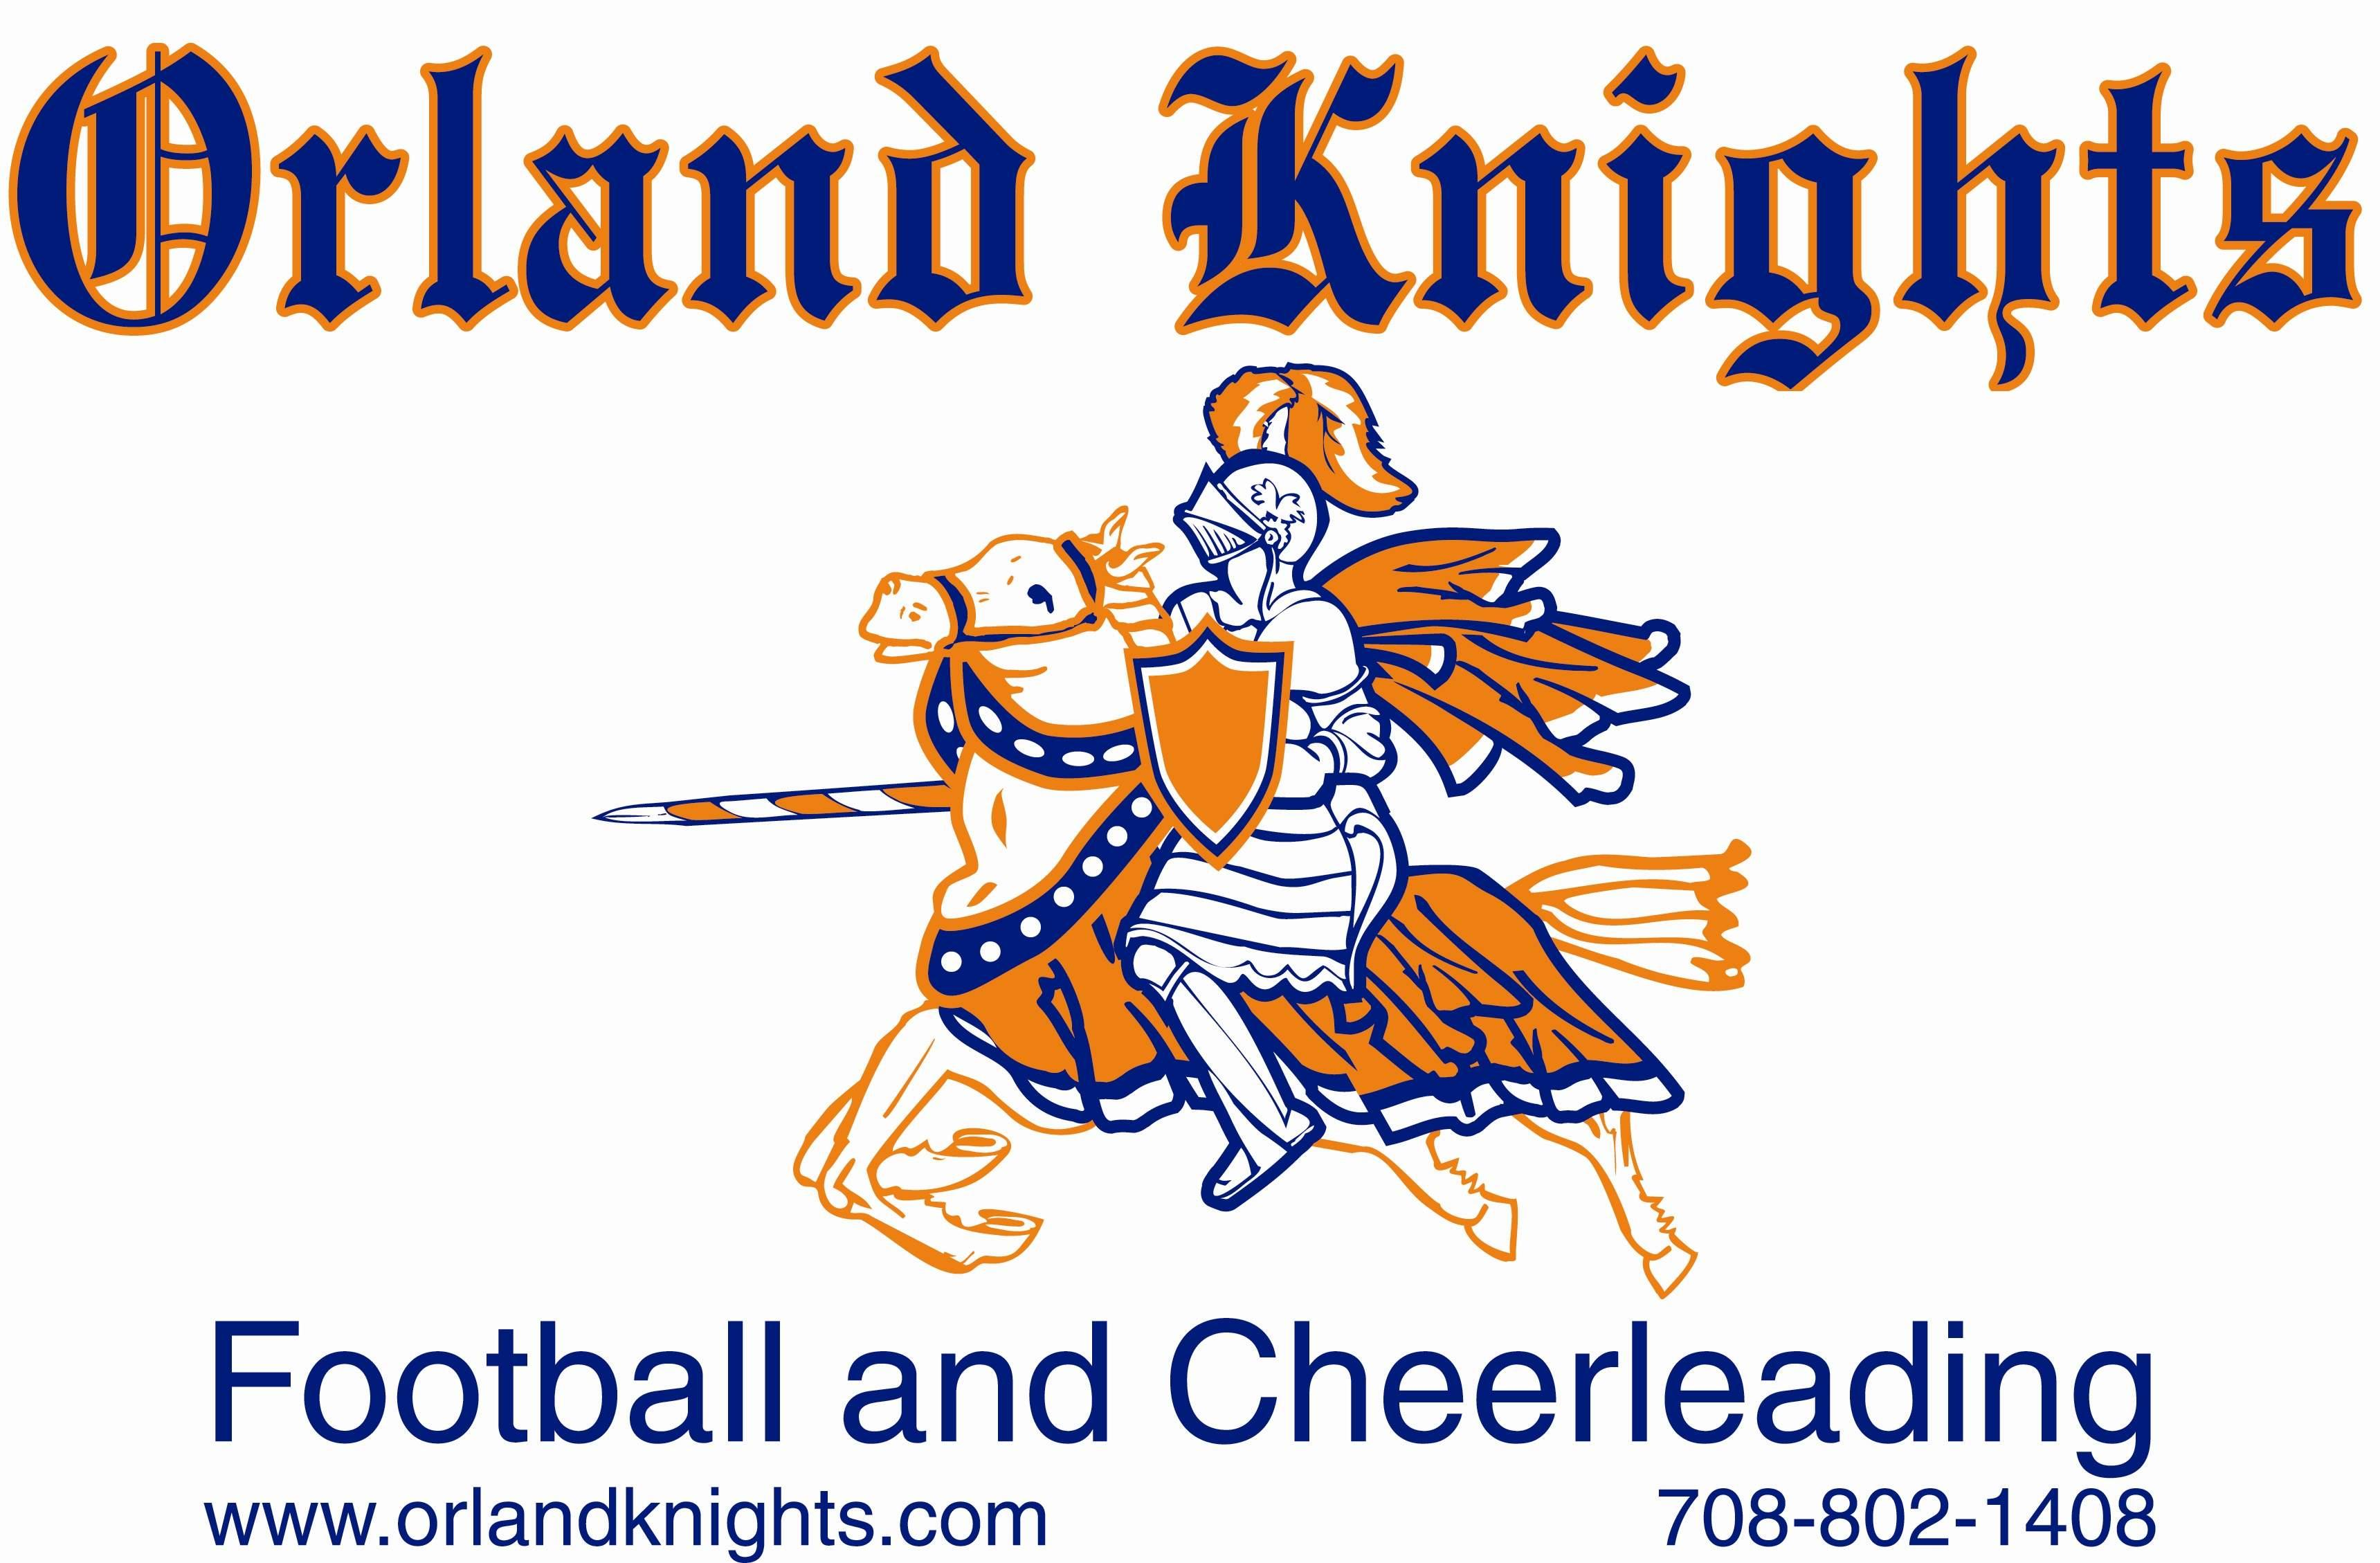 Orland Knights